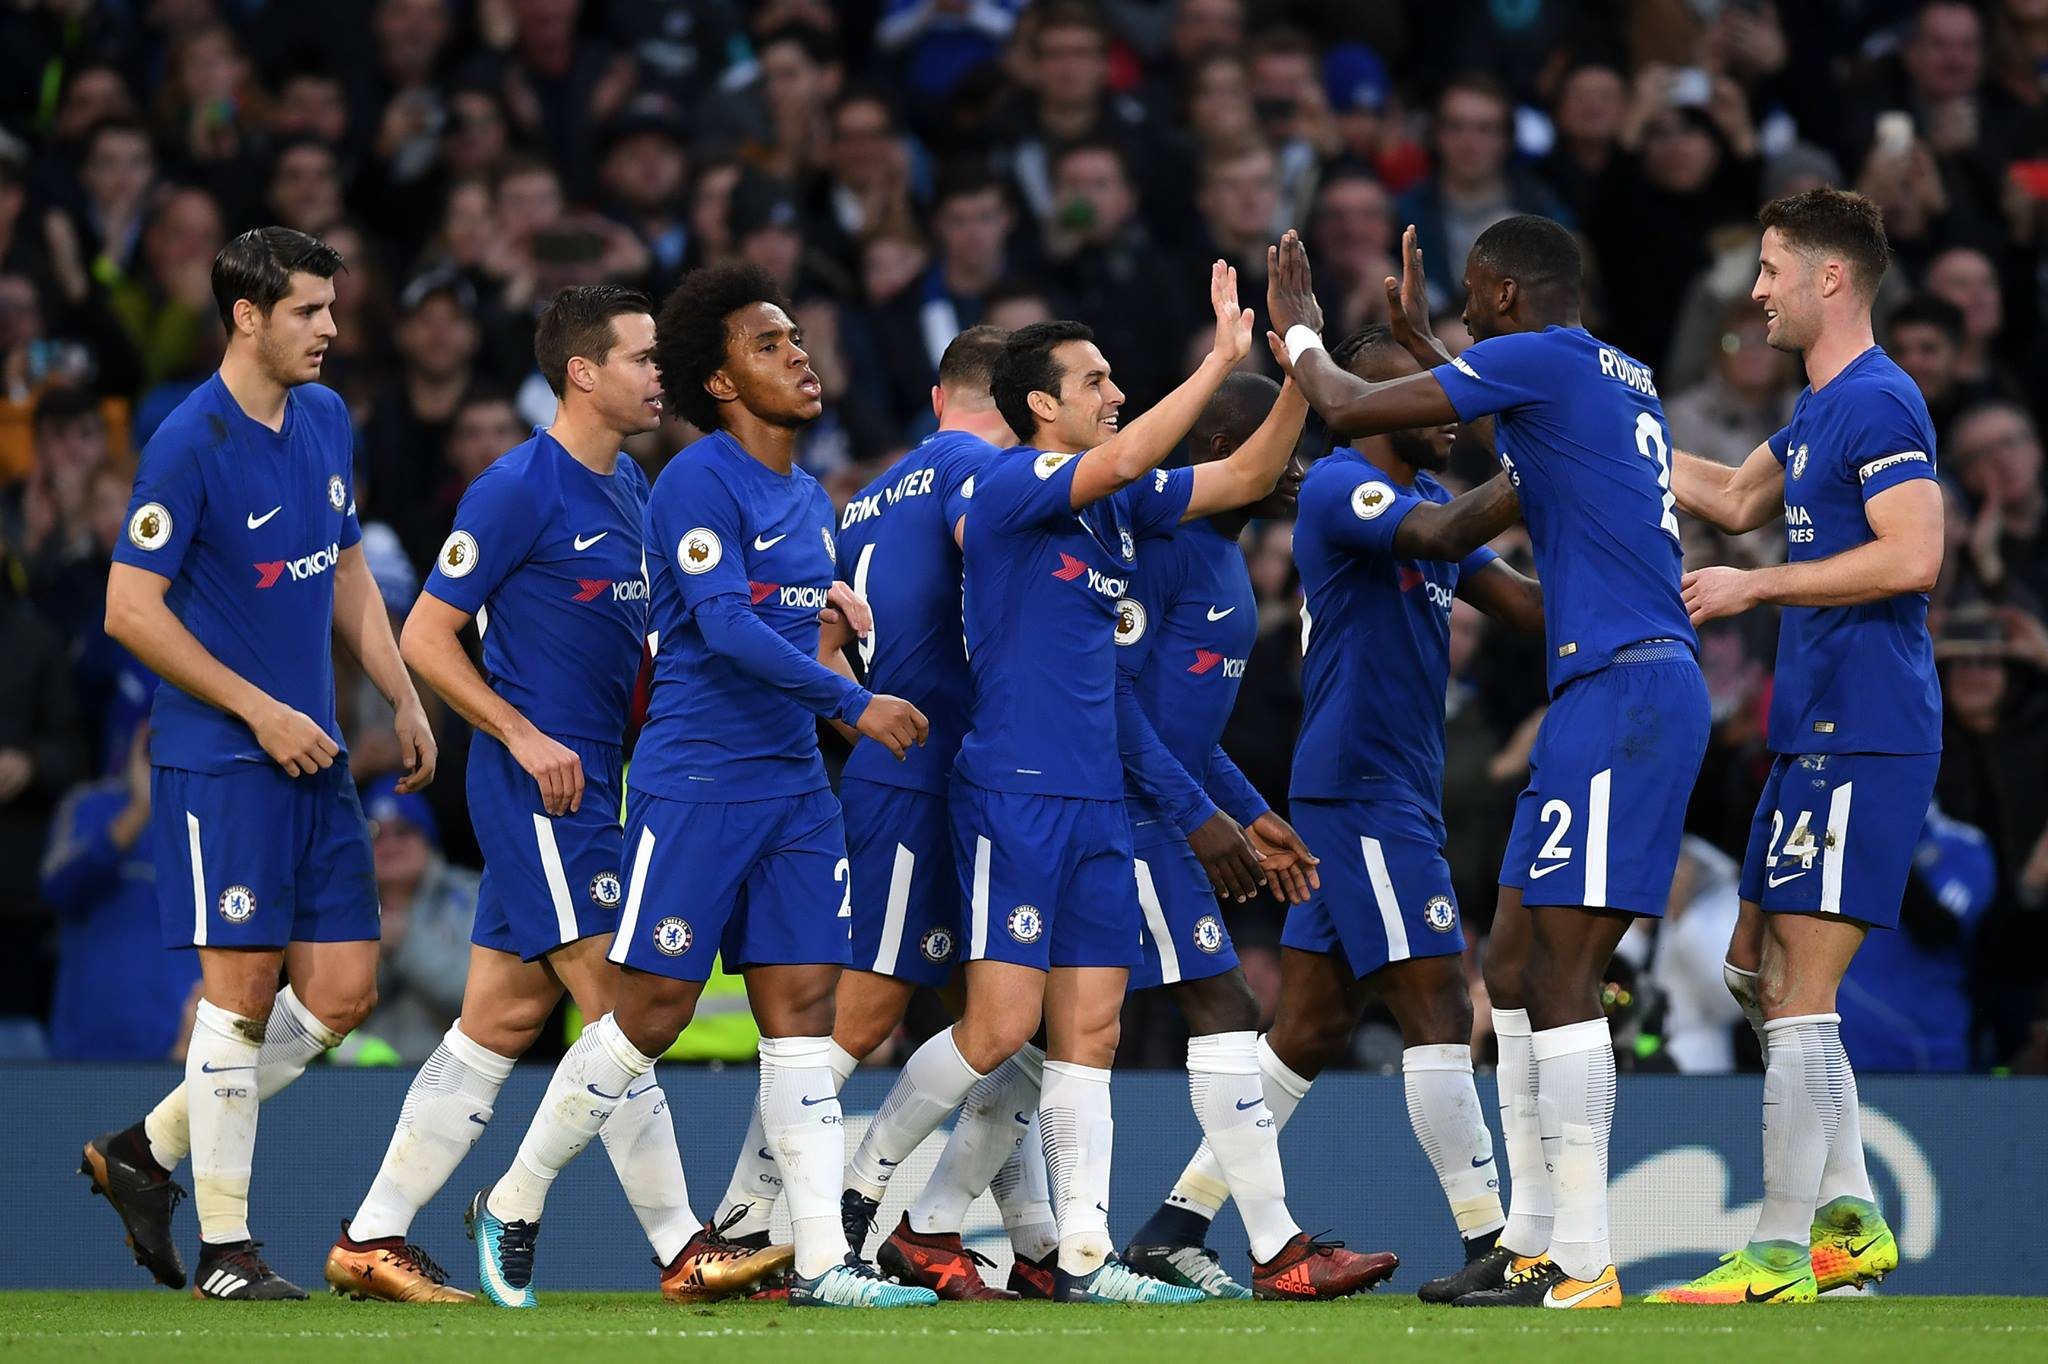 Britain's  Richest Man Ratcliffe Offers  £2bn For Chelsea